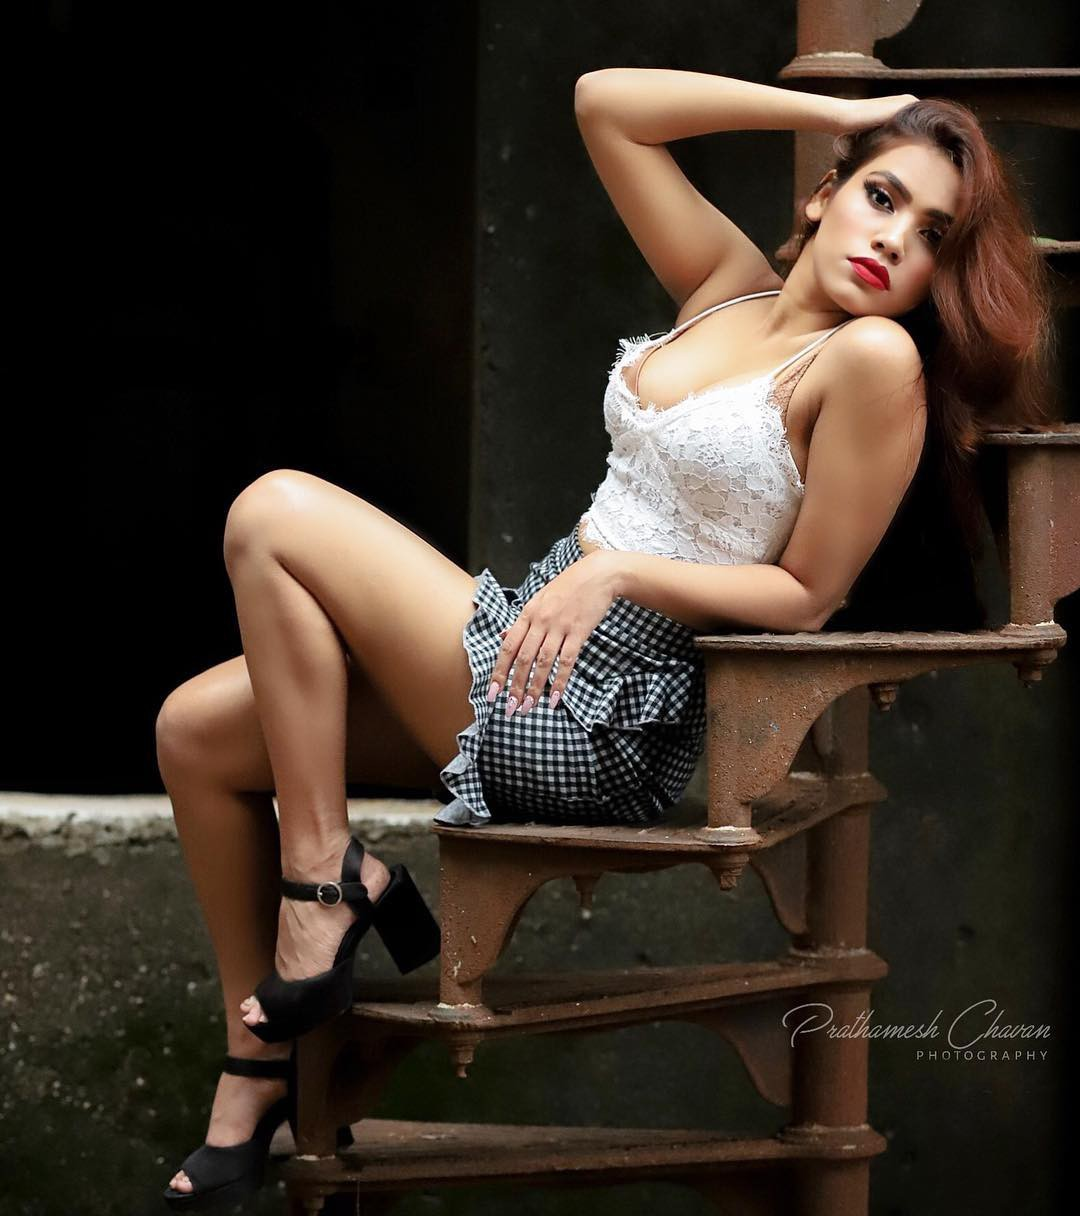 French style purbasha das hot, Shape of You